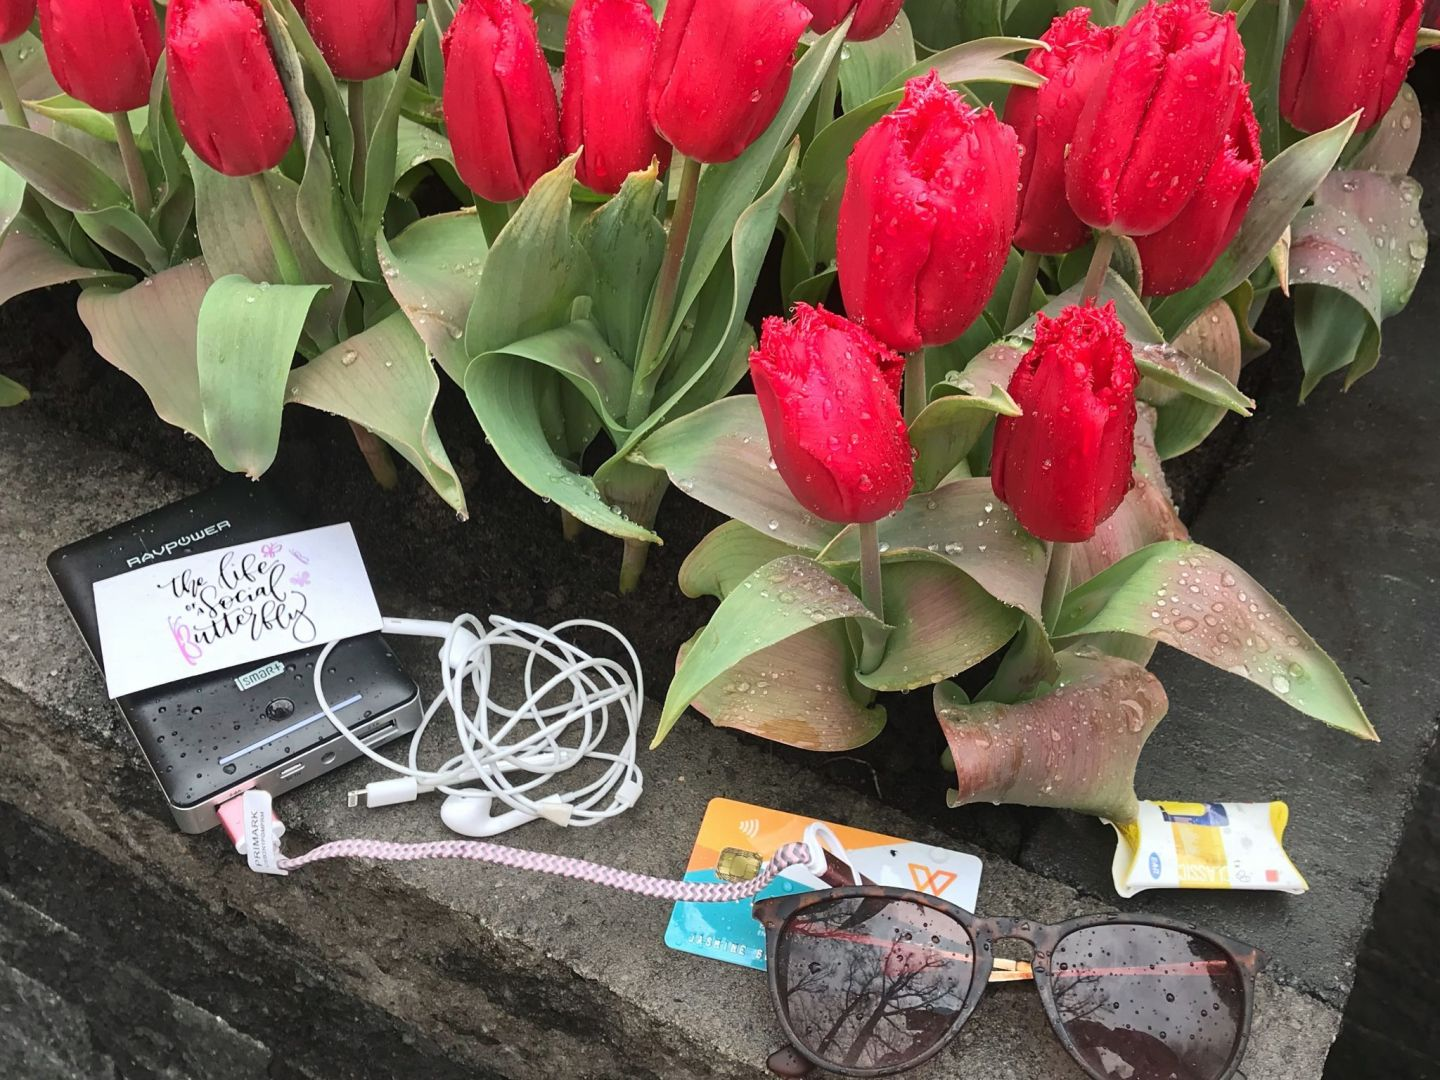 Travel Essentials including WeSwap Card among the Dutch Tulips